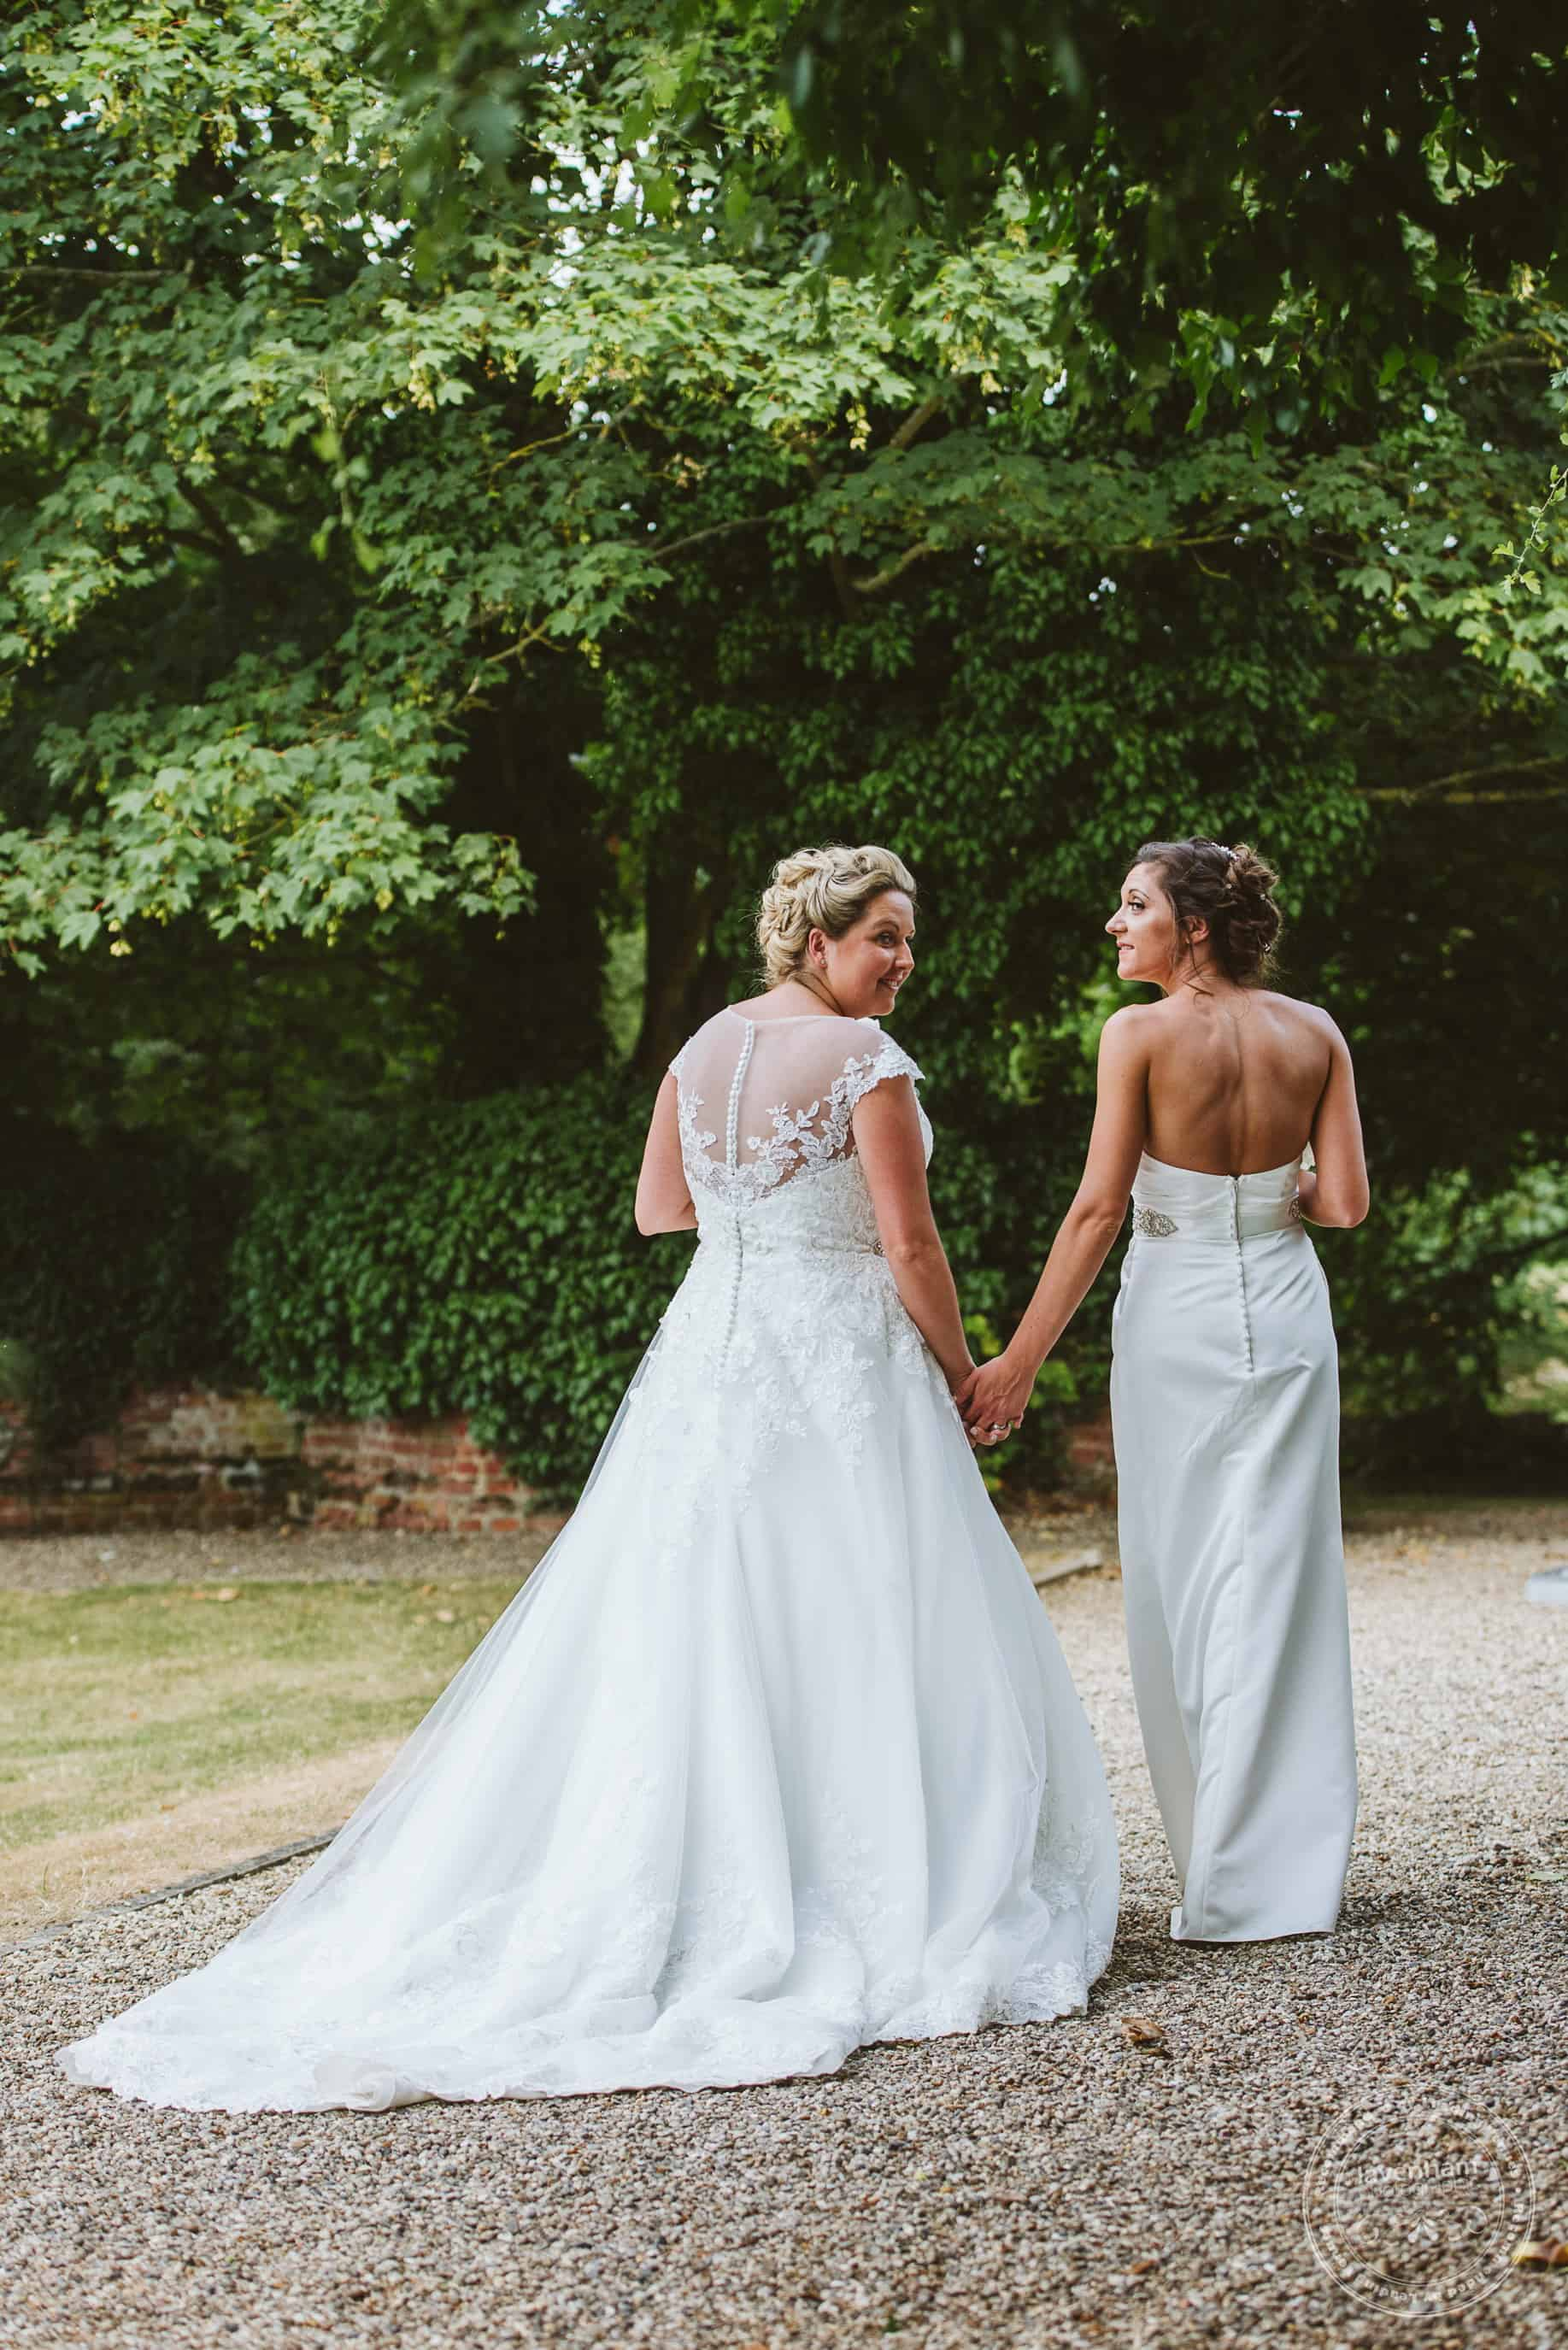 Two brides walking in the grounds at Leez Priory Gay Wedding